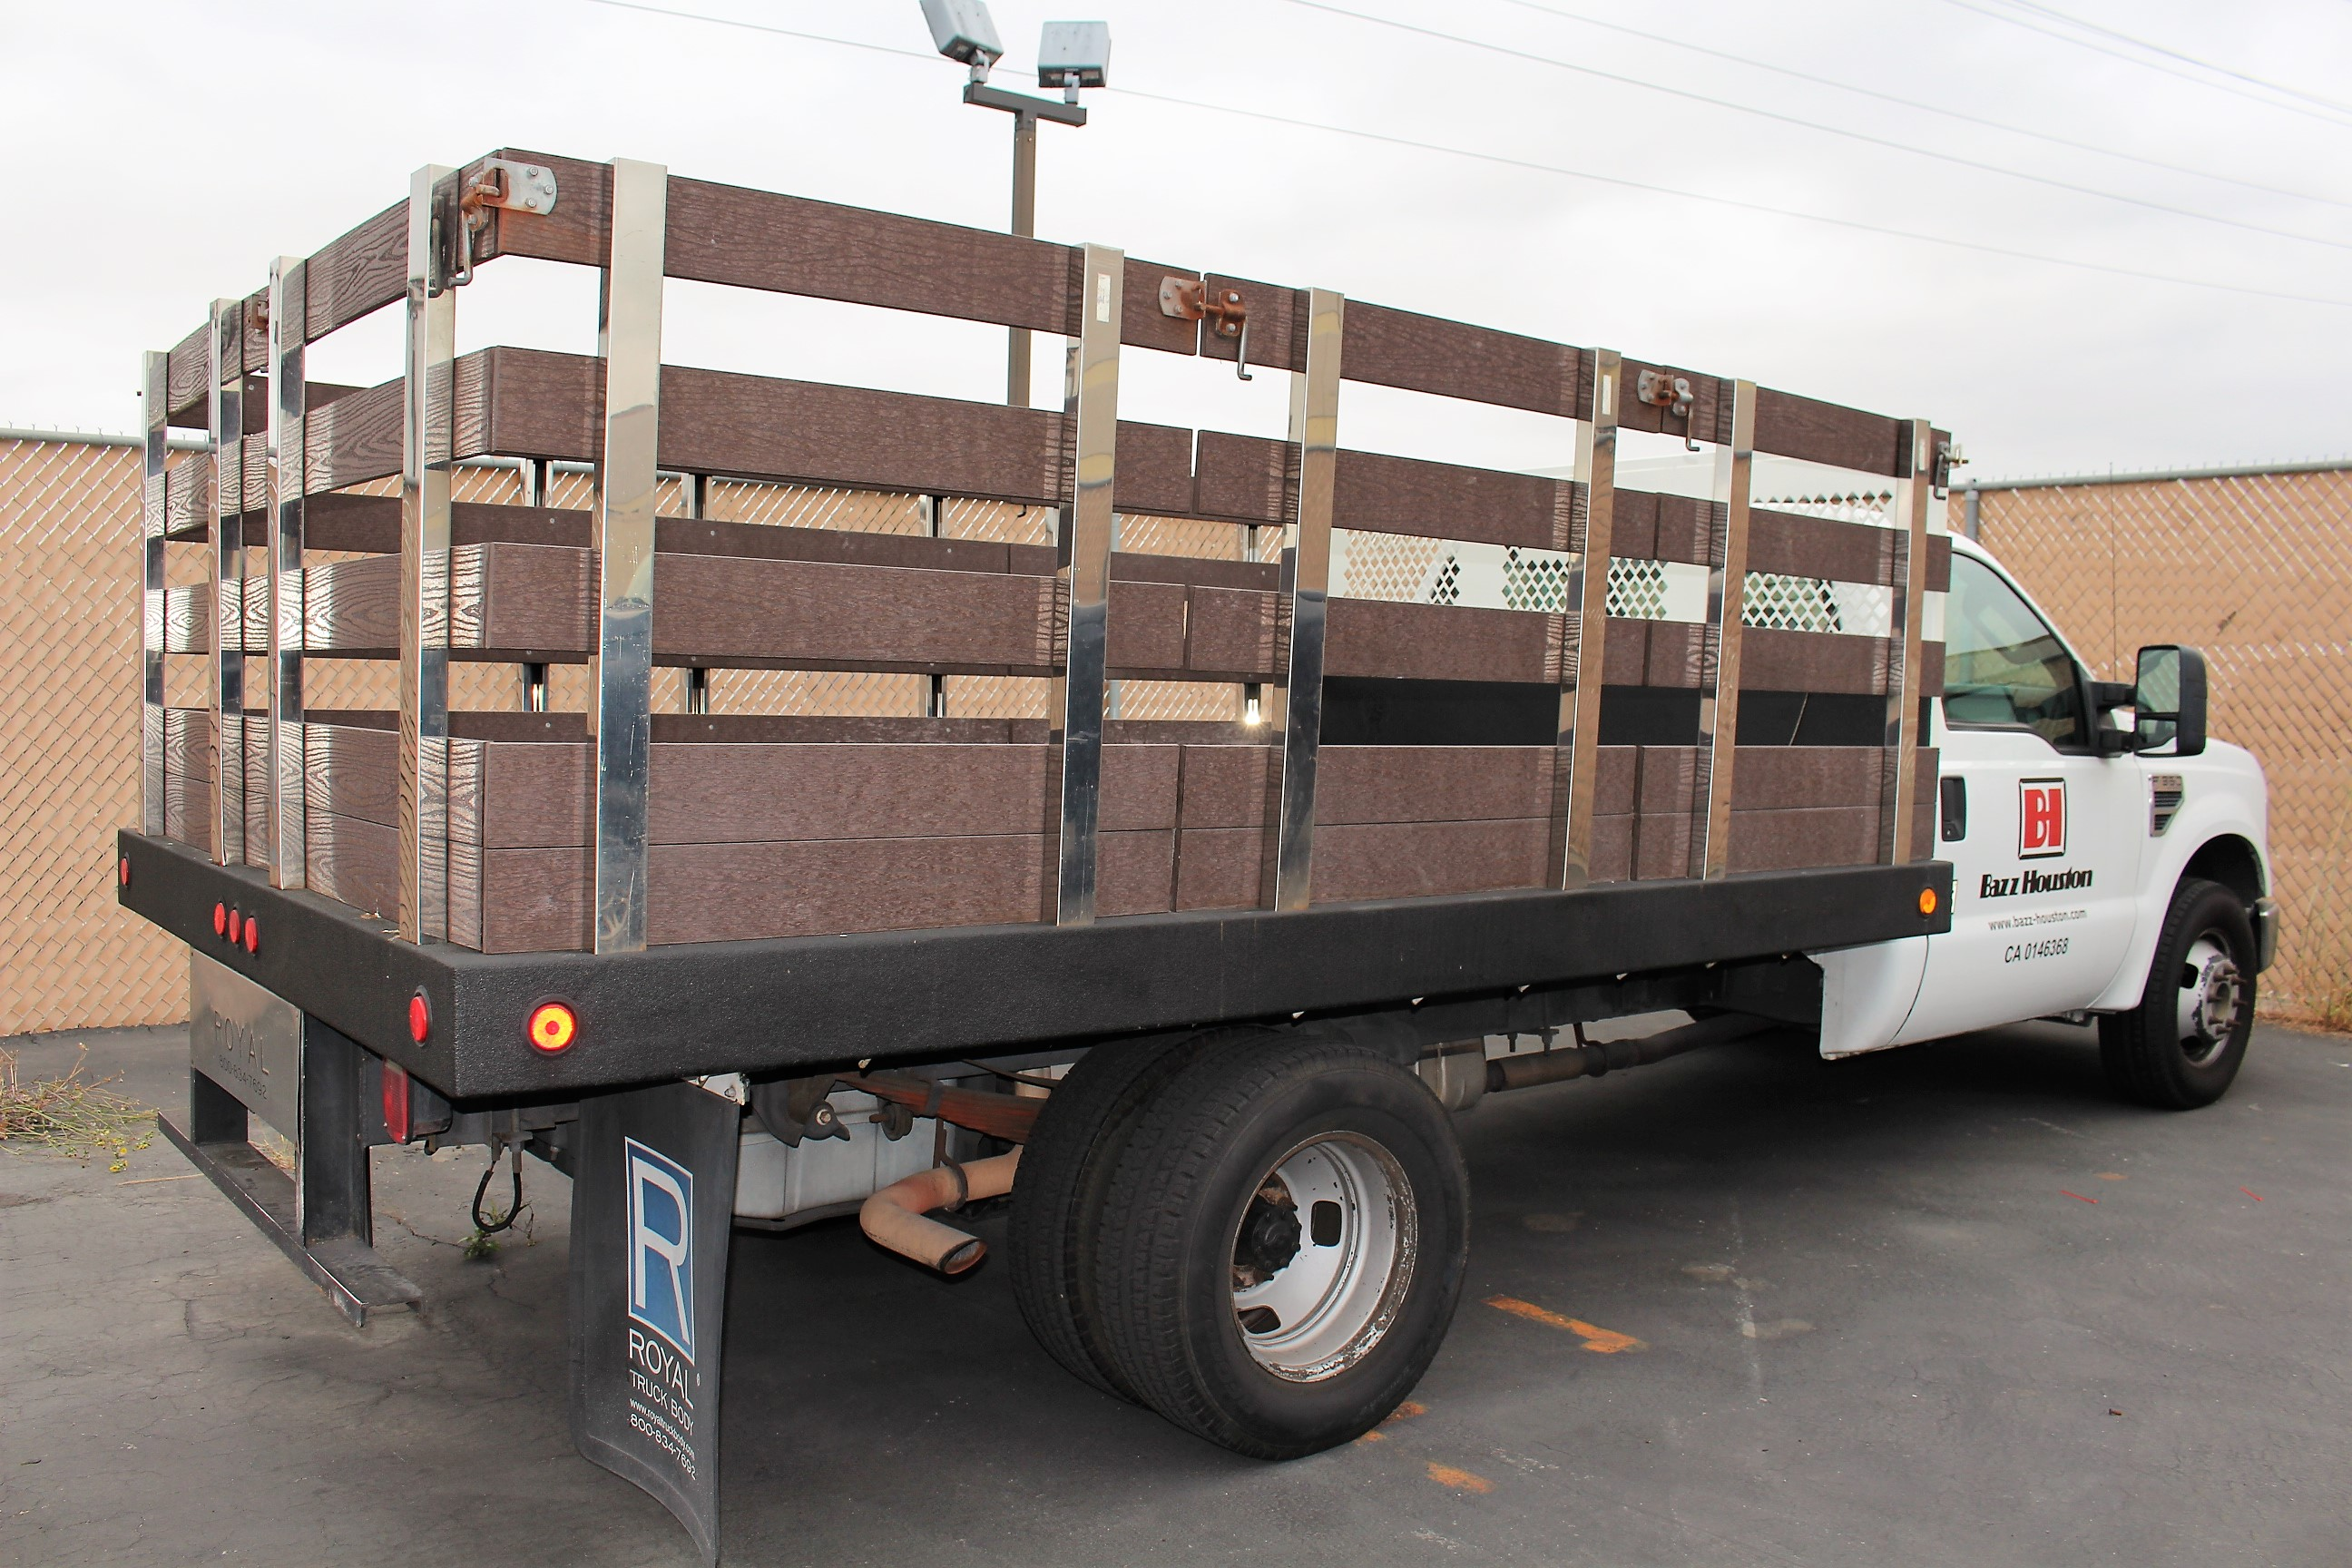 Lot 2 - 2008 FORD F350 XL SUPER DUTY STAKE BED TRUCK, 12' ROYAL BED BODY, 5.4L EFI V8 GASOLINE ENGINE,